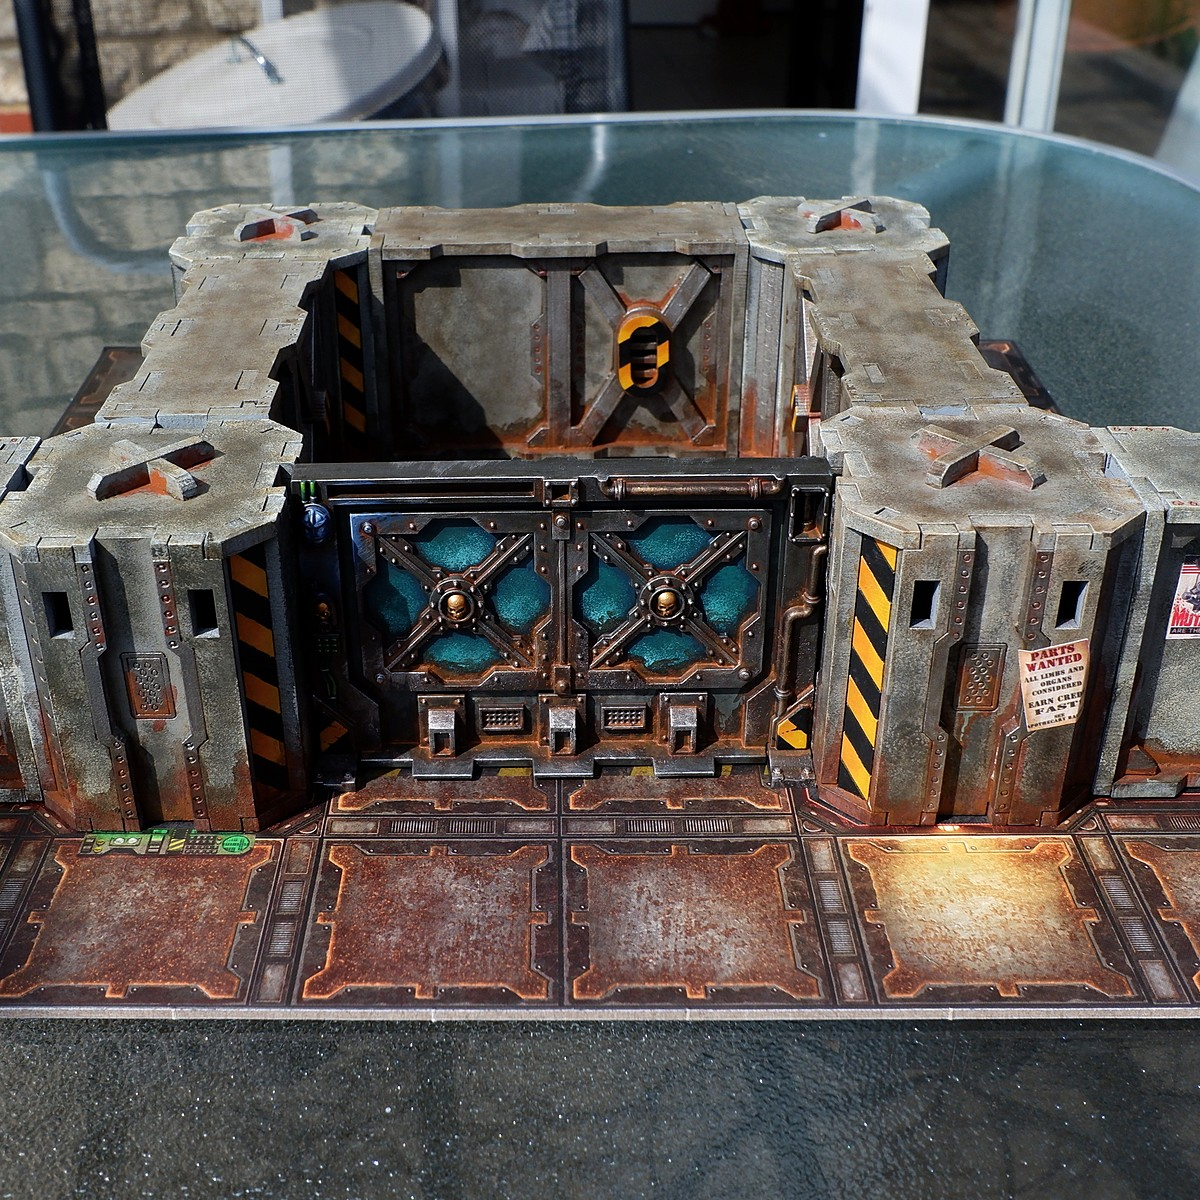 Zone mortalis terrain